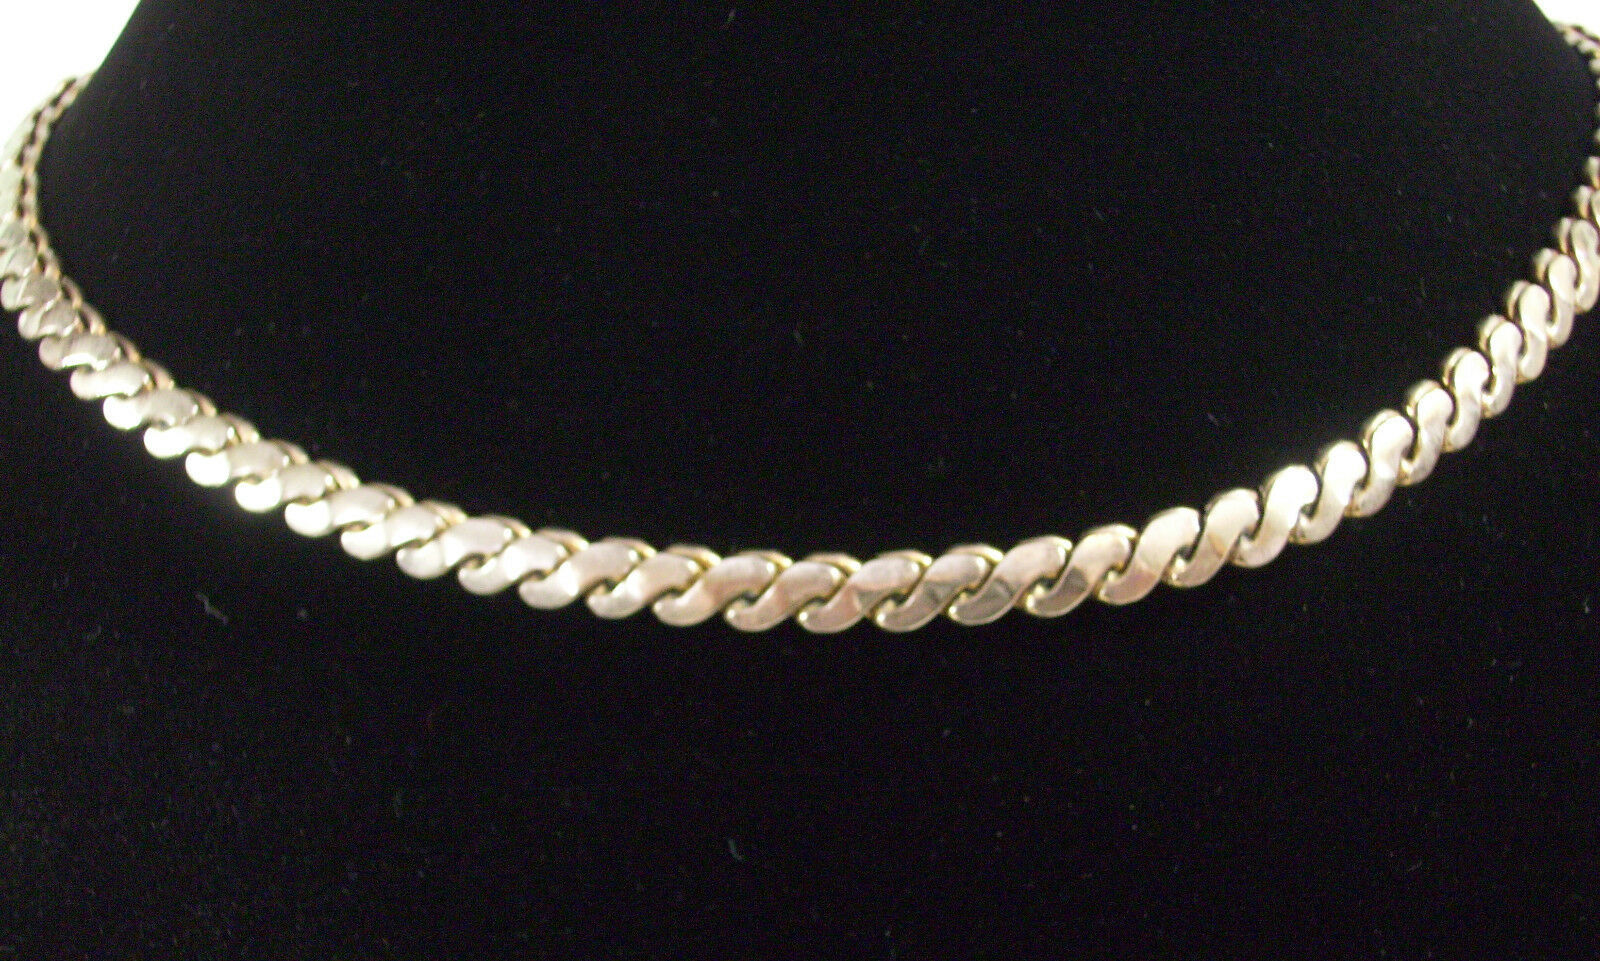 Primary image for Coro Silver Plate Necklace Serpentine Chain Choker Vintage Estate Career